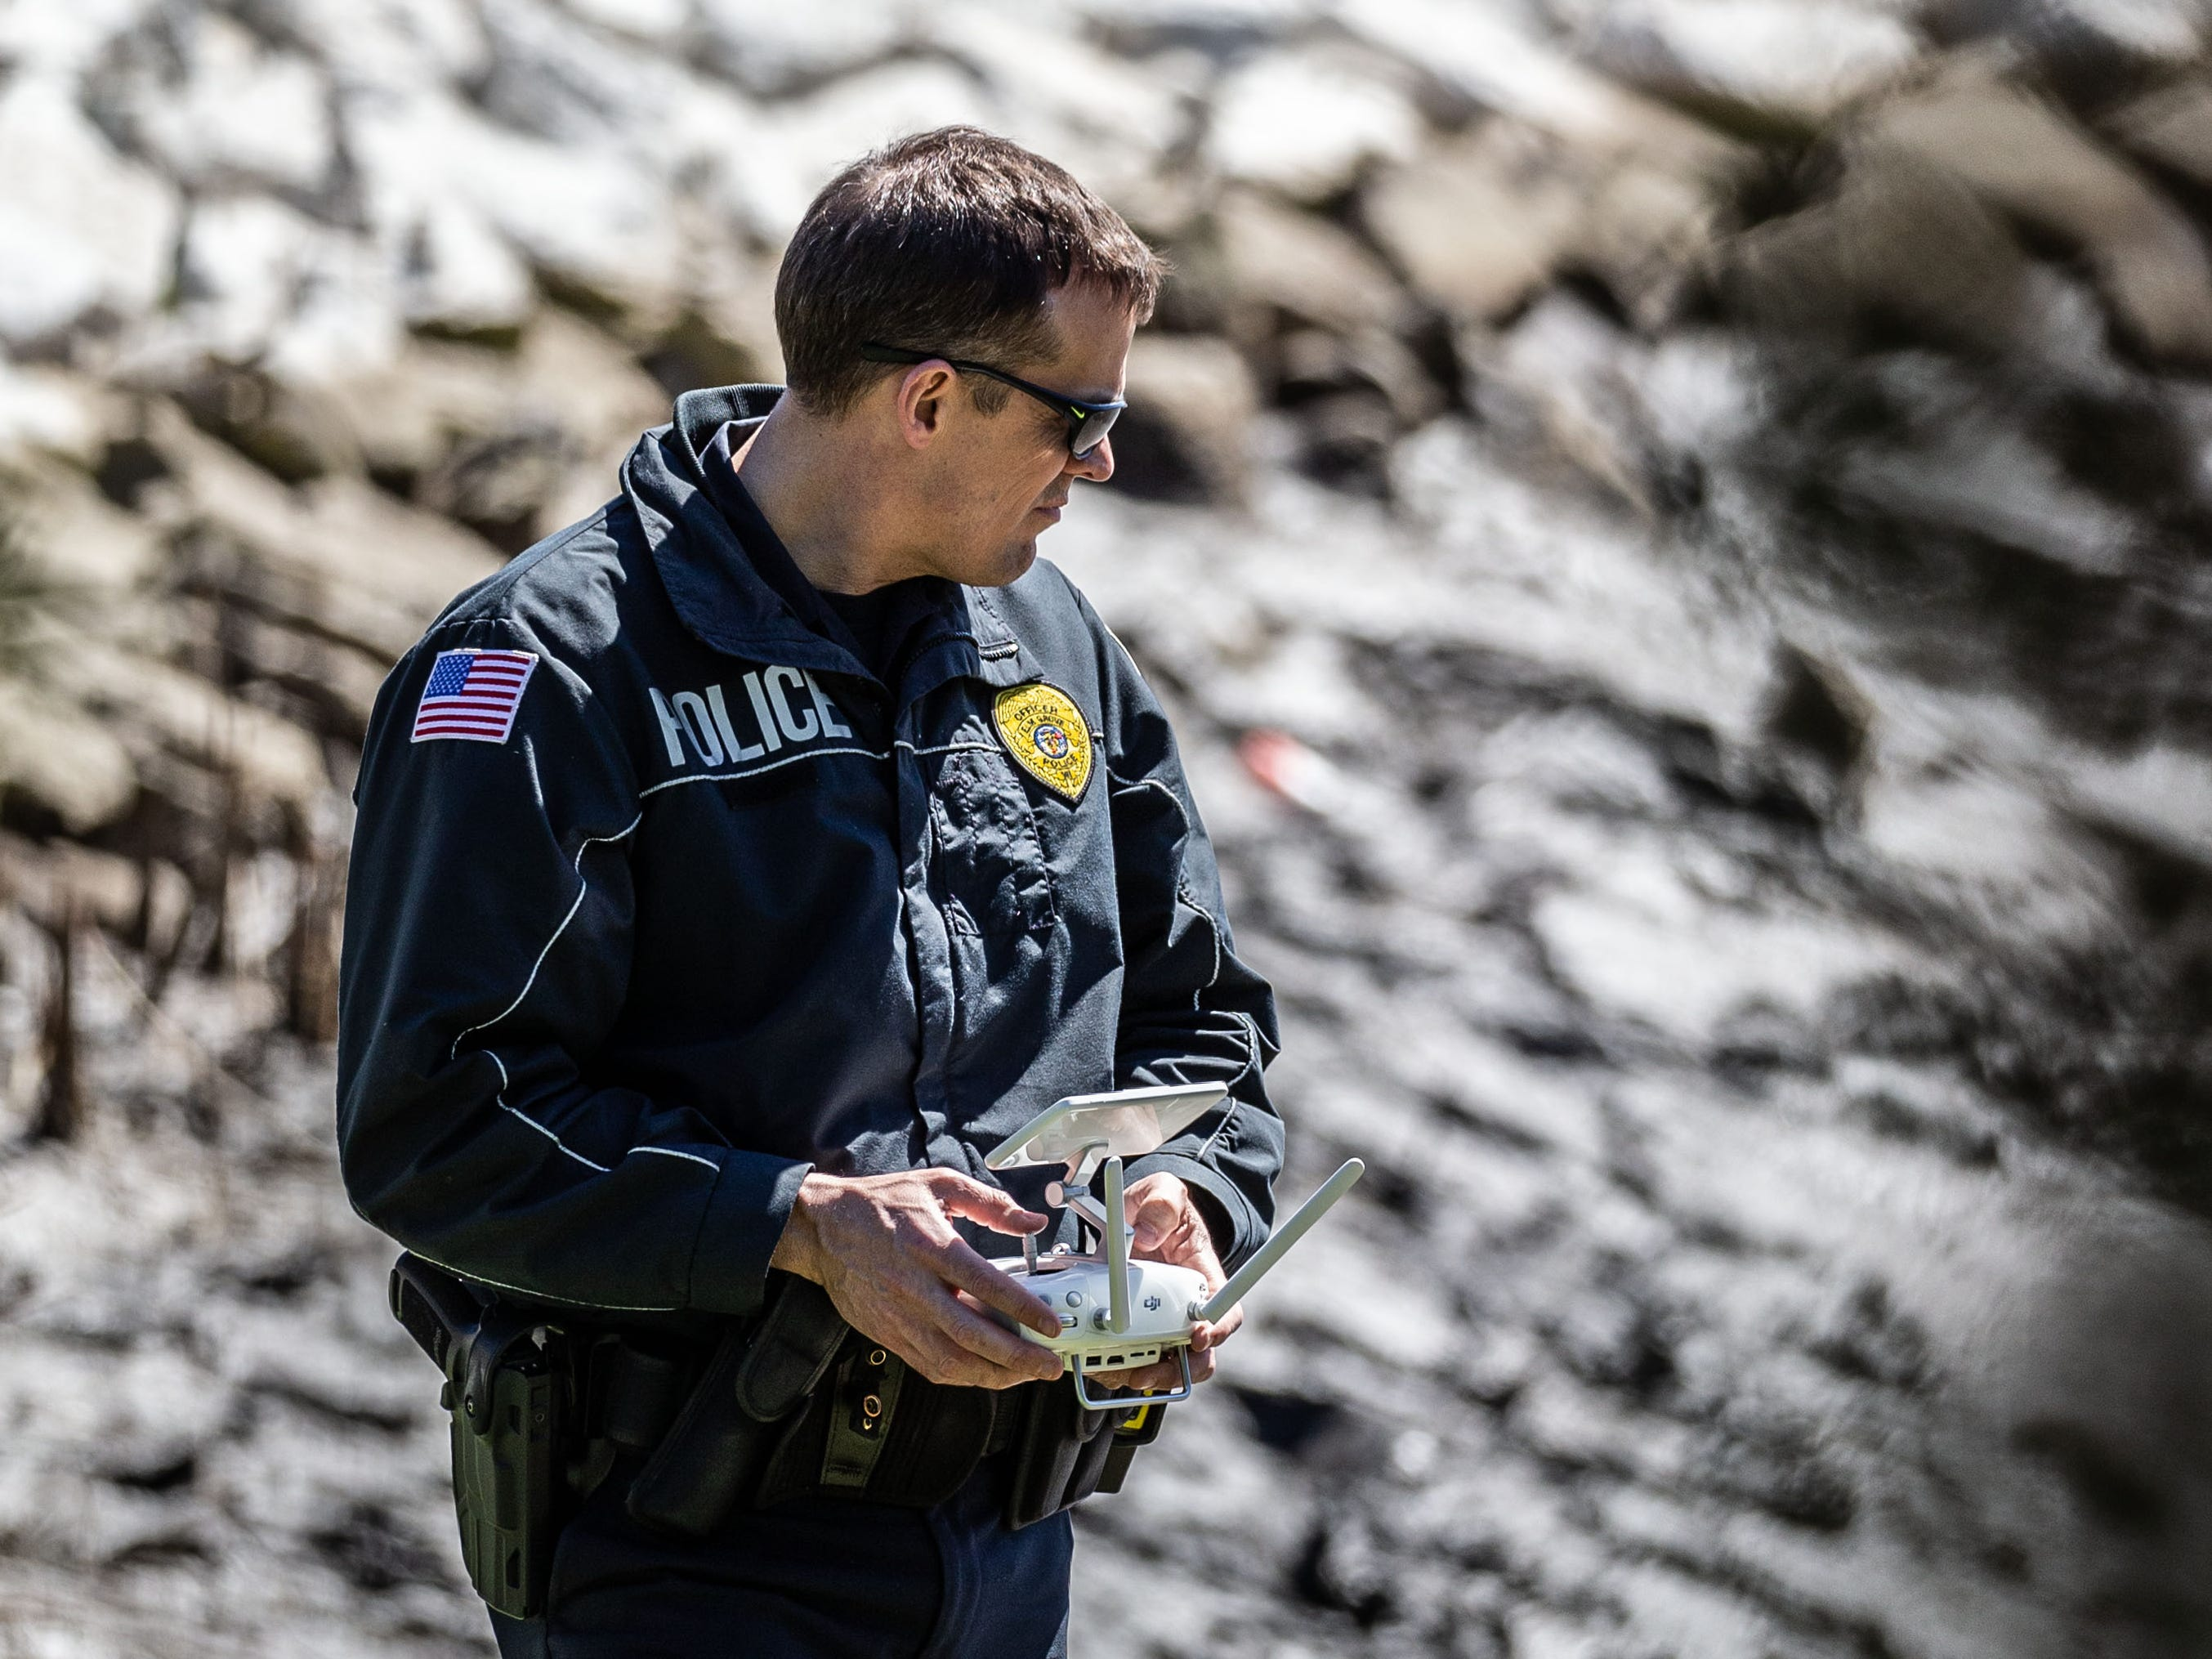 A Elm Grove Police officer uses a drone to assist the Town of Brookfield Police as they search for evidence in a drained pond at the Brookfield Lake Condominiums on Monday, April 15, 2019. The search is related to a November homicide.